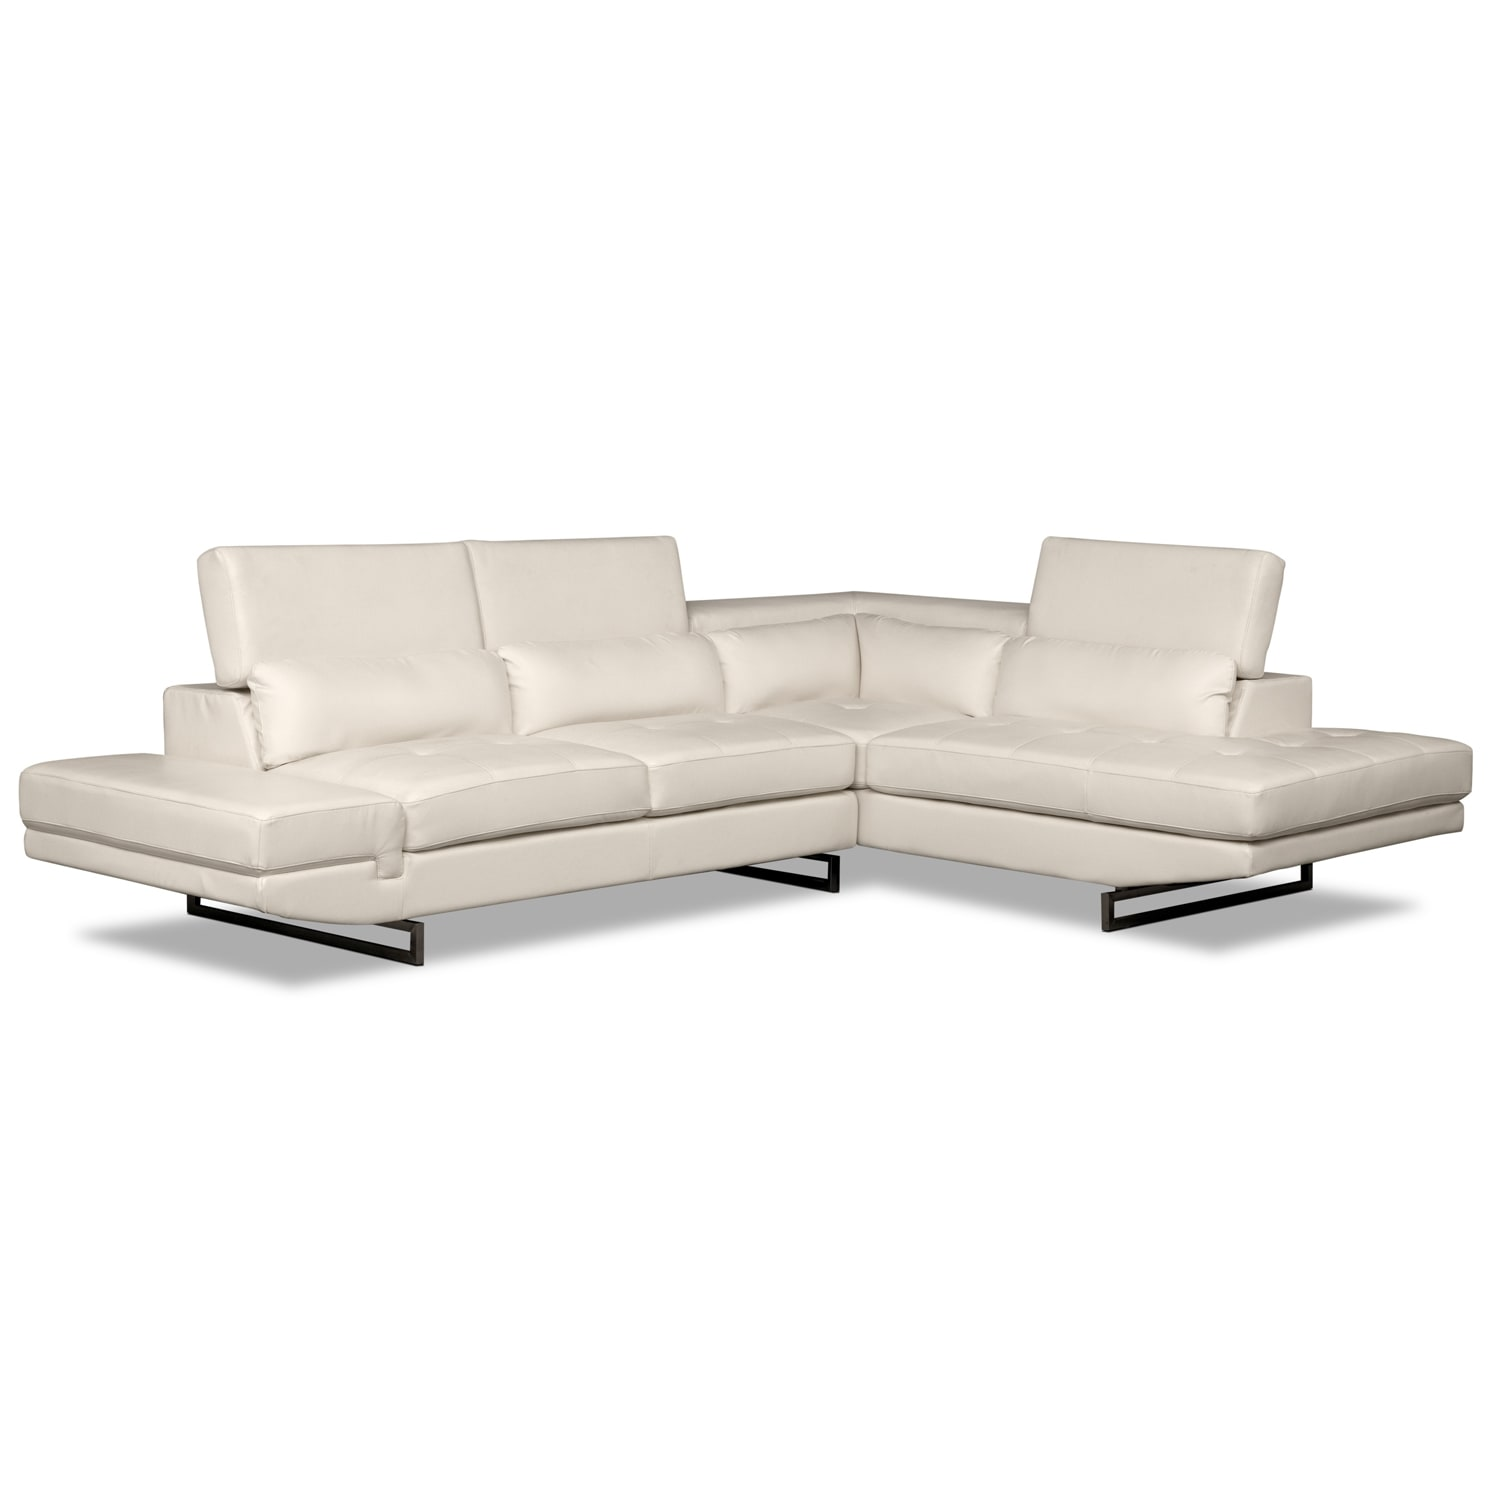 [Madrid 2 Pc. Sectional]